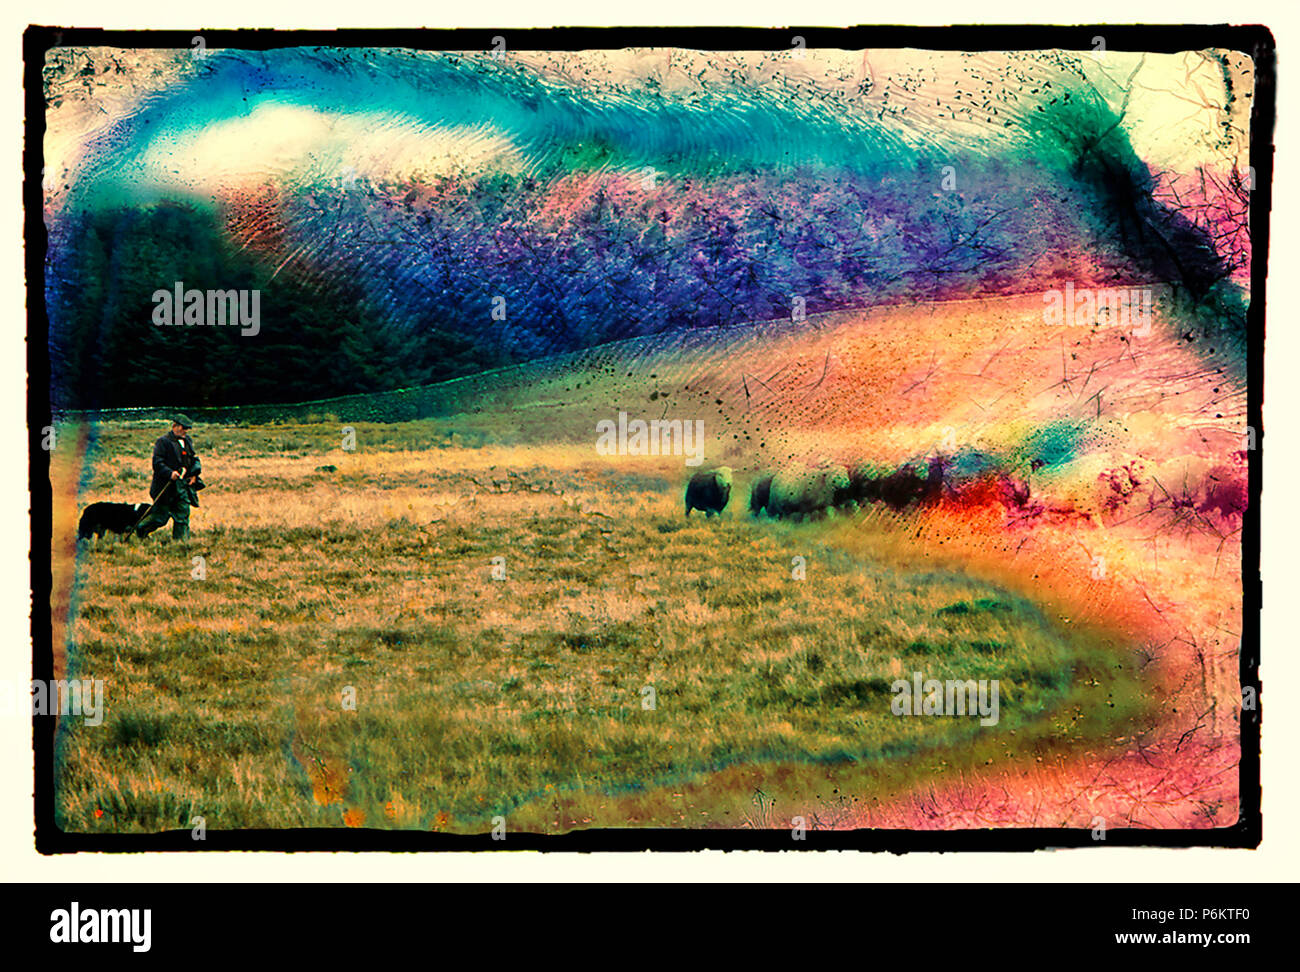 Black edged boarder image with a manipulated and cross processed transparency image showing a shepherd and his dog walking across towards his sheep - Stock Image